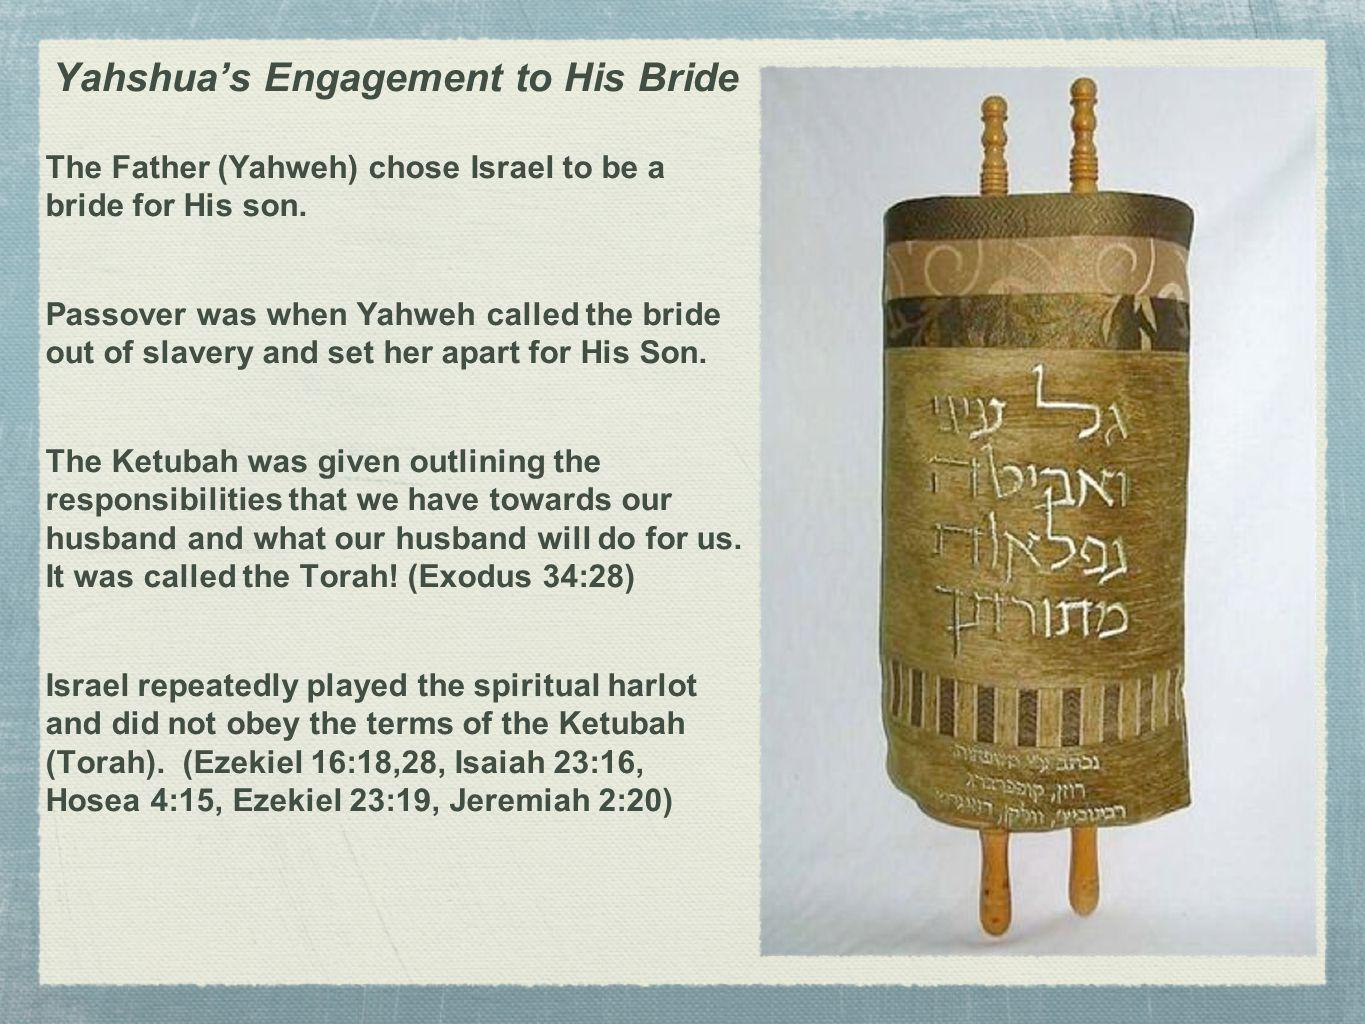 Yahshua's Engagement to His Bride